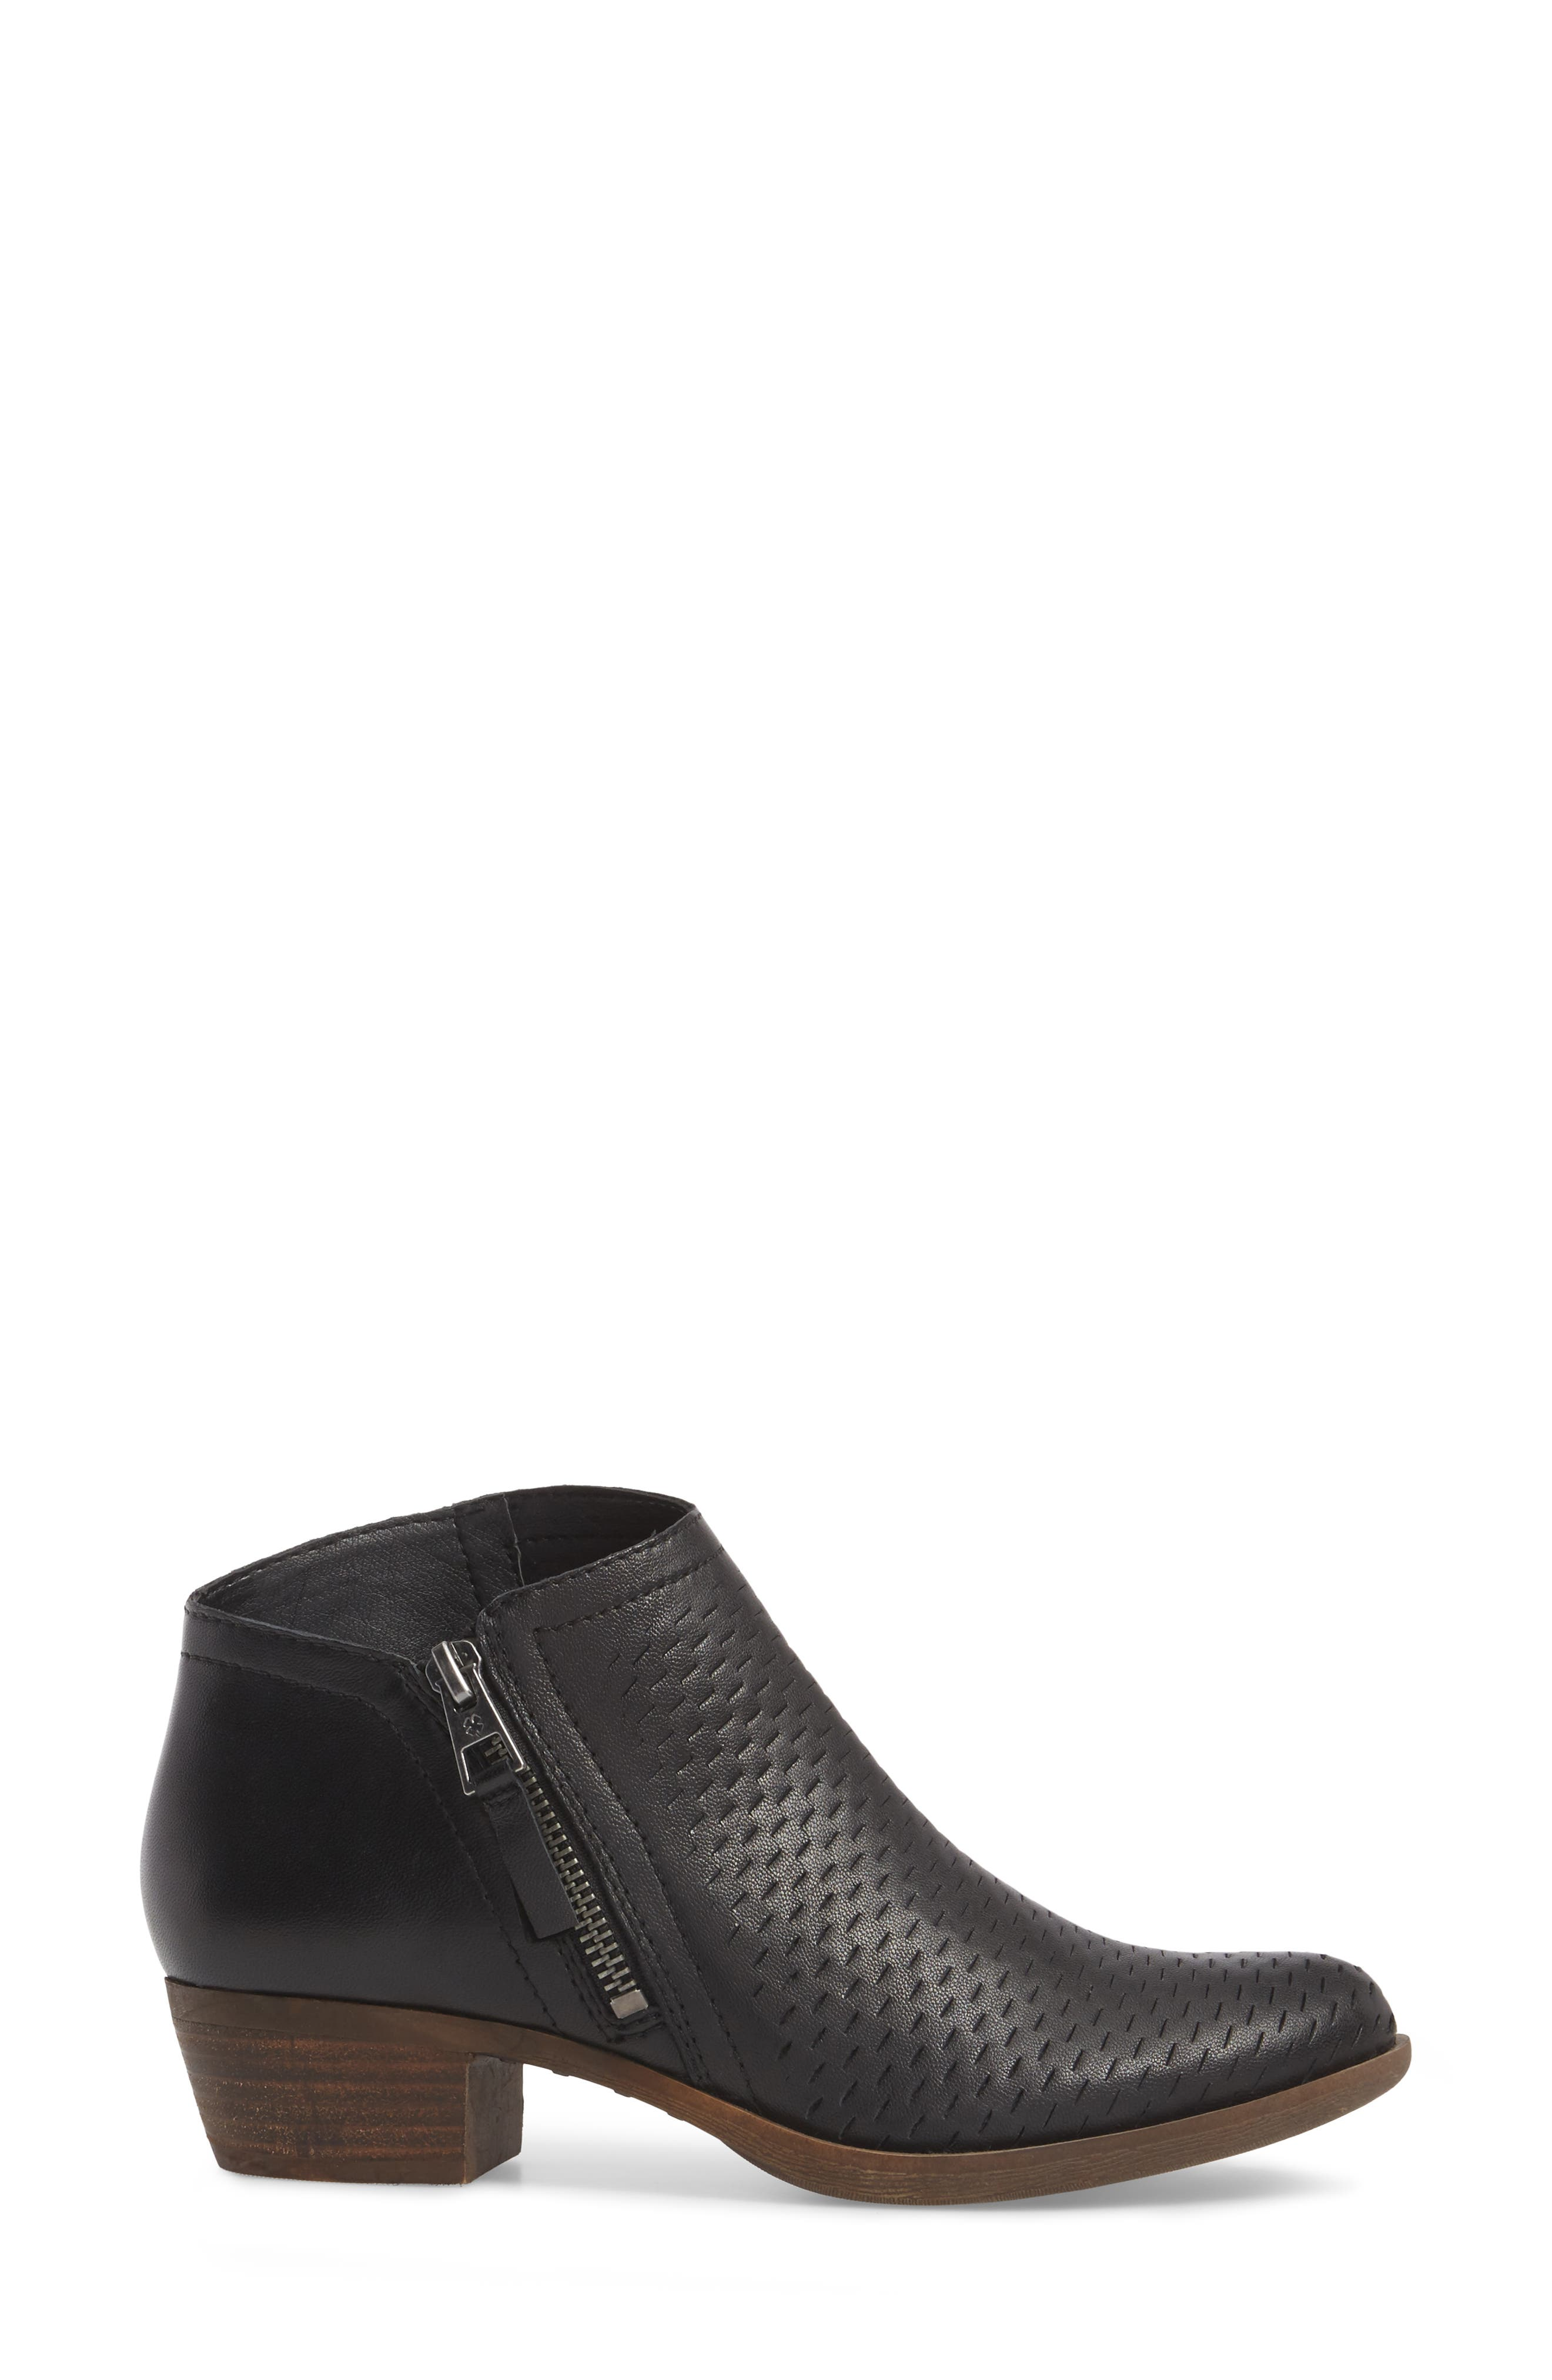 Brielley Perforated Bootie,                             Alternate thumbnail 3, color,                             002